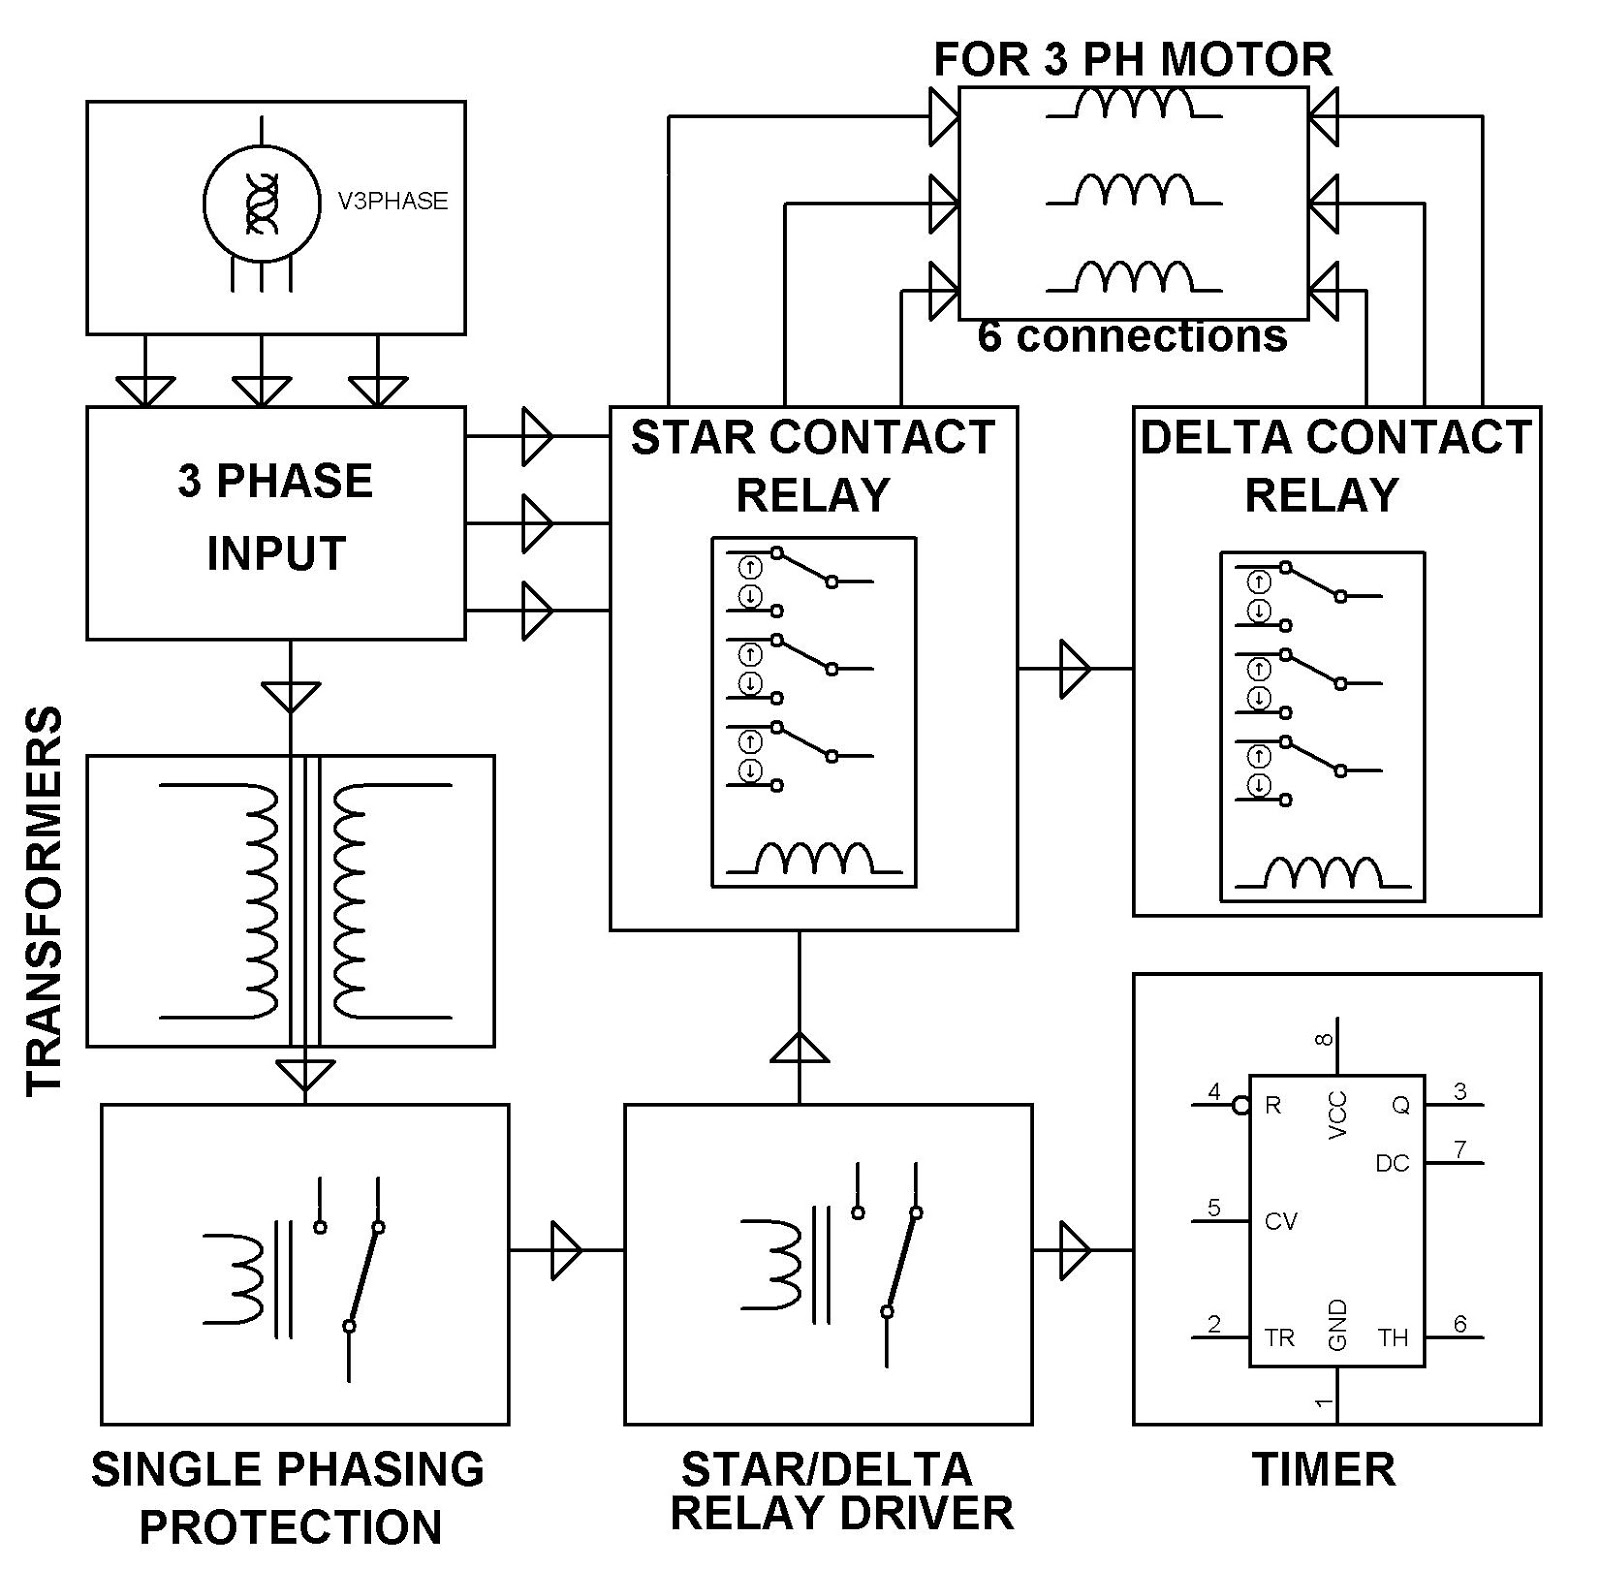 star delta starter wiring diagram with timer how to wire downlights electronics project malaysia automatic